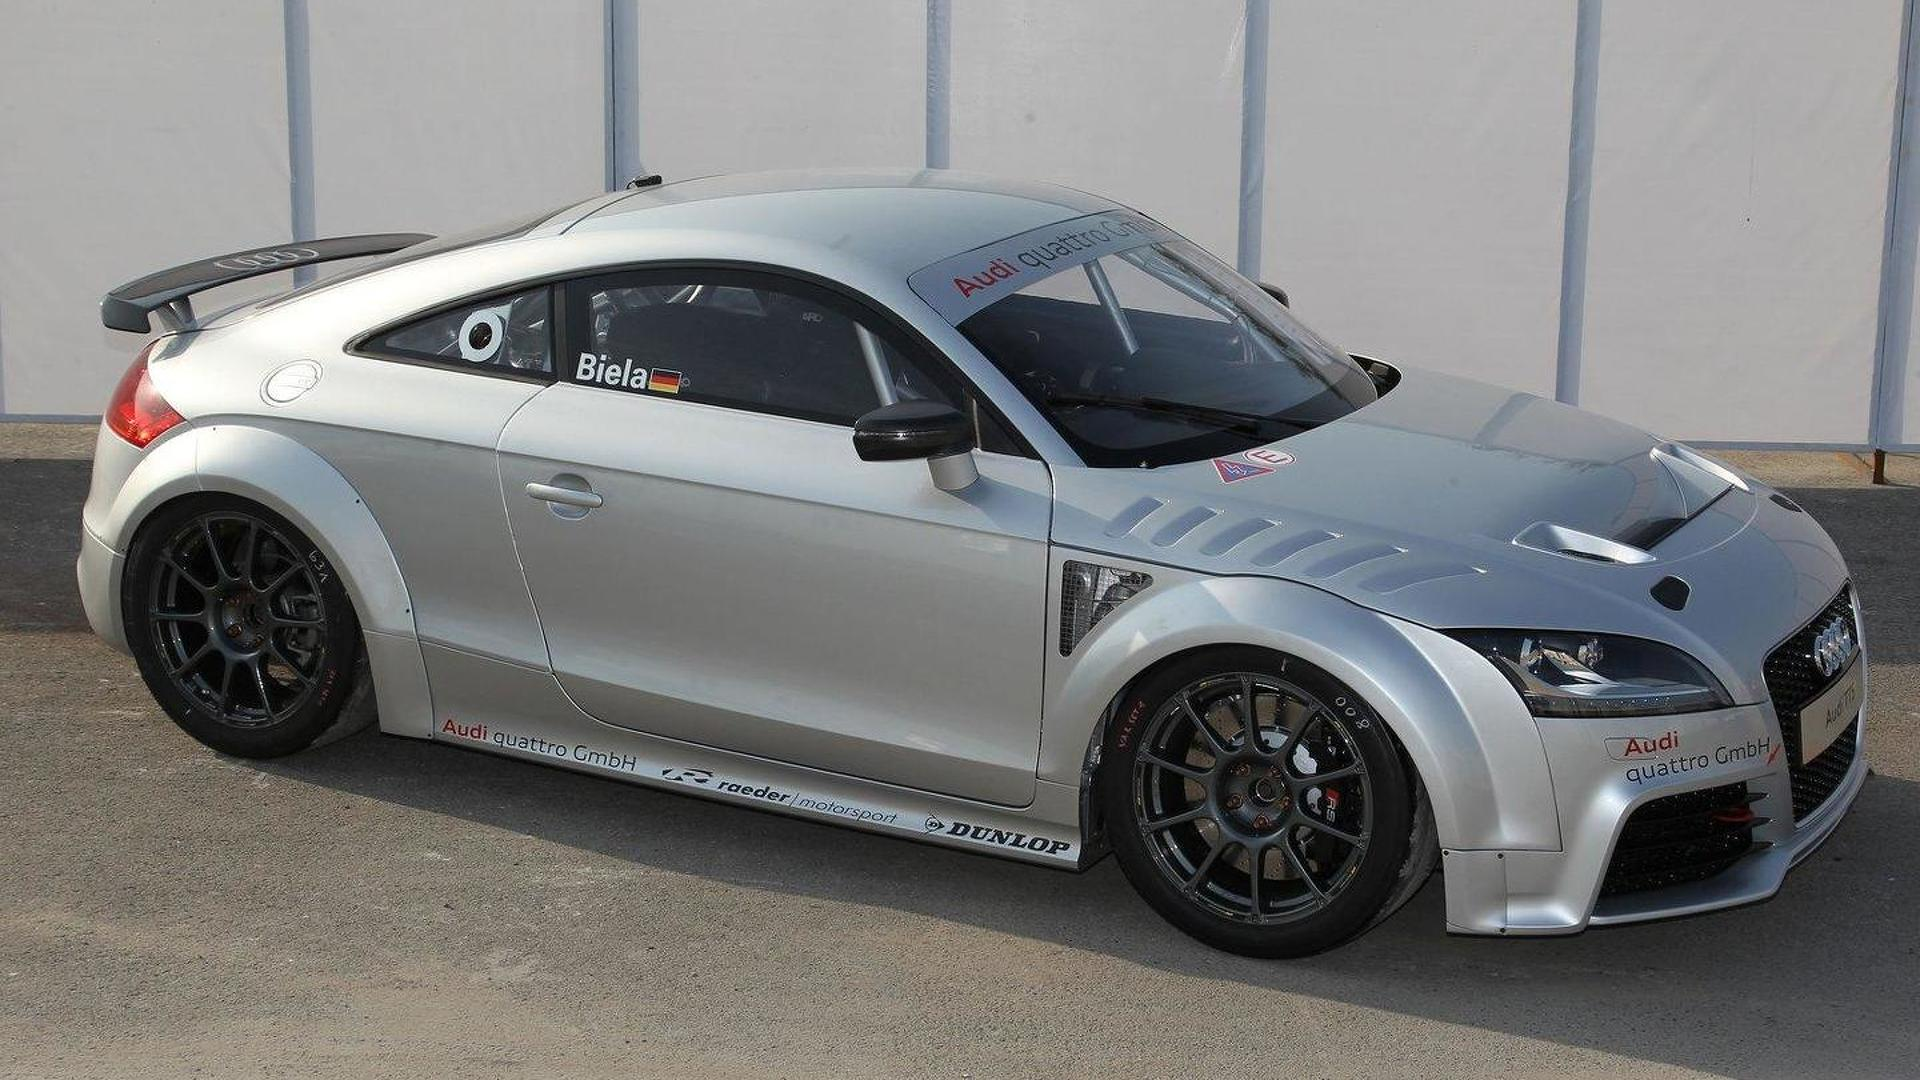 Audi TT GT4 concept revealed for club sport racing